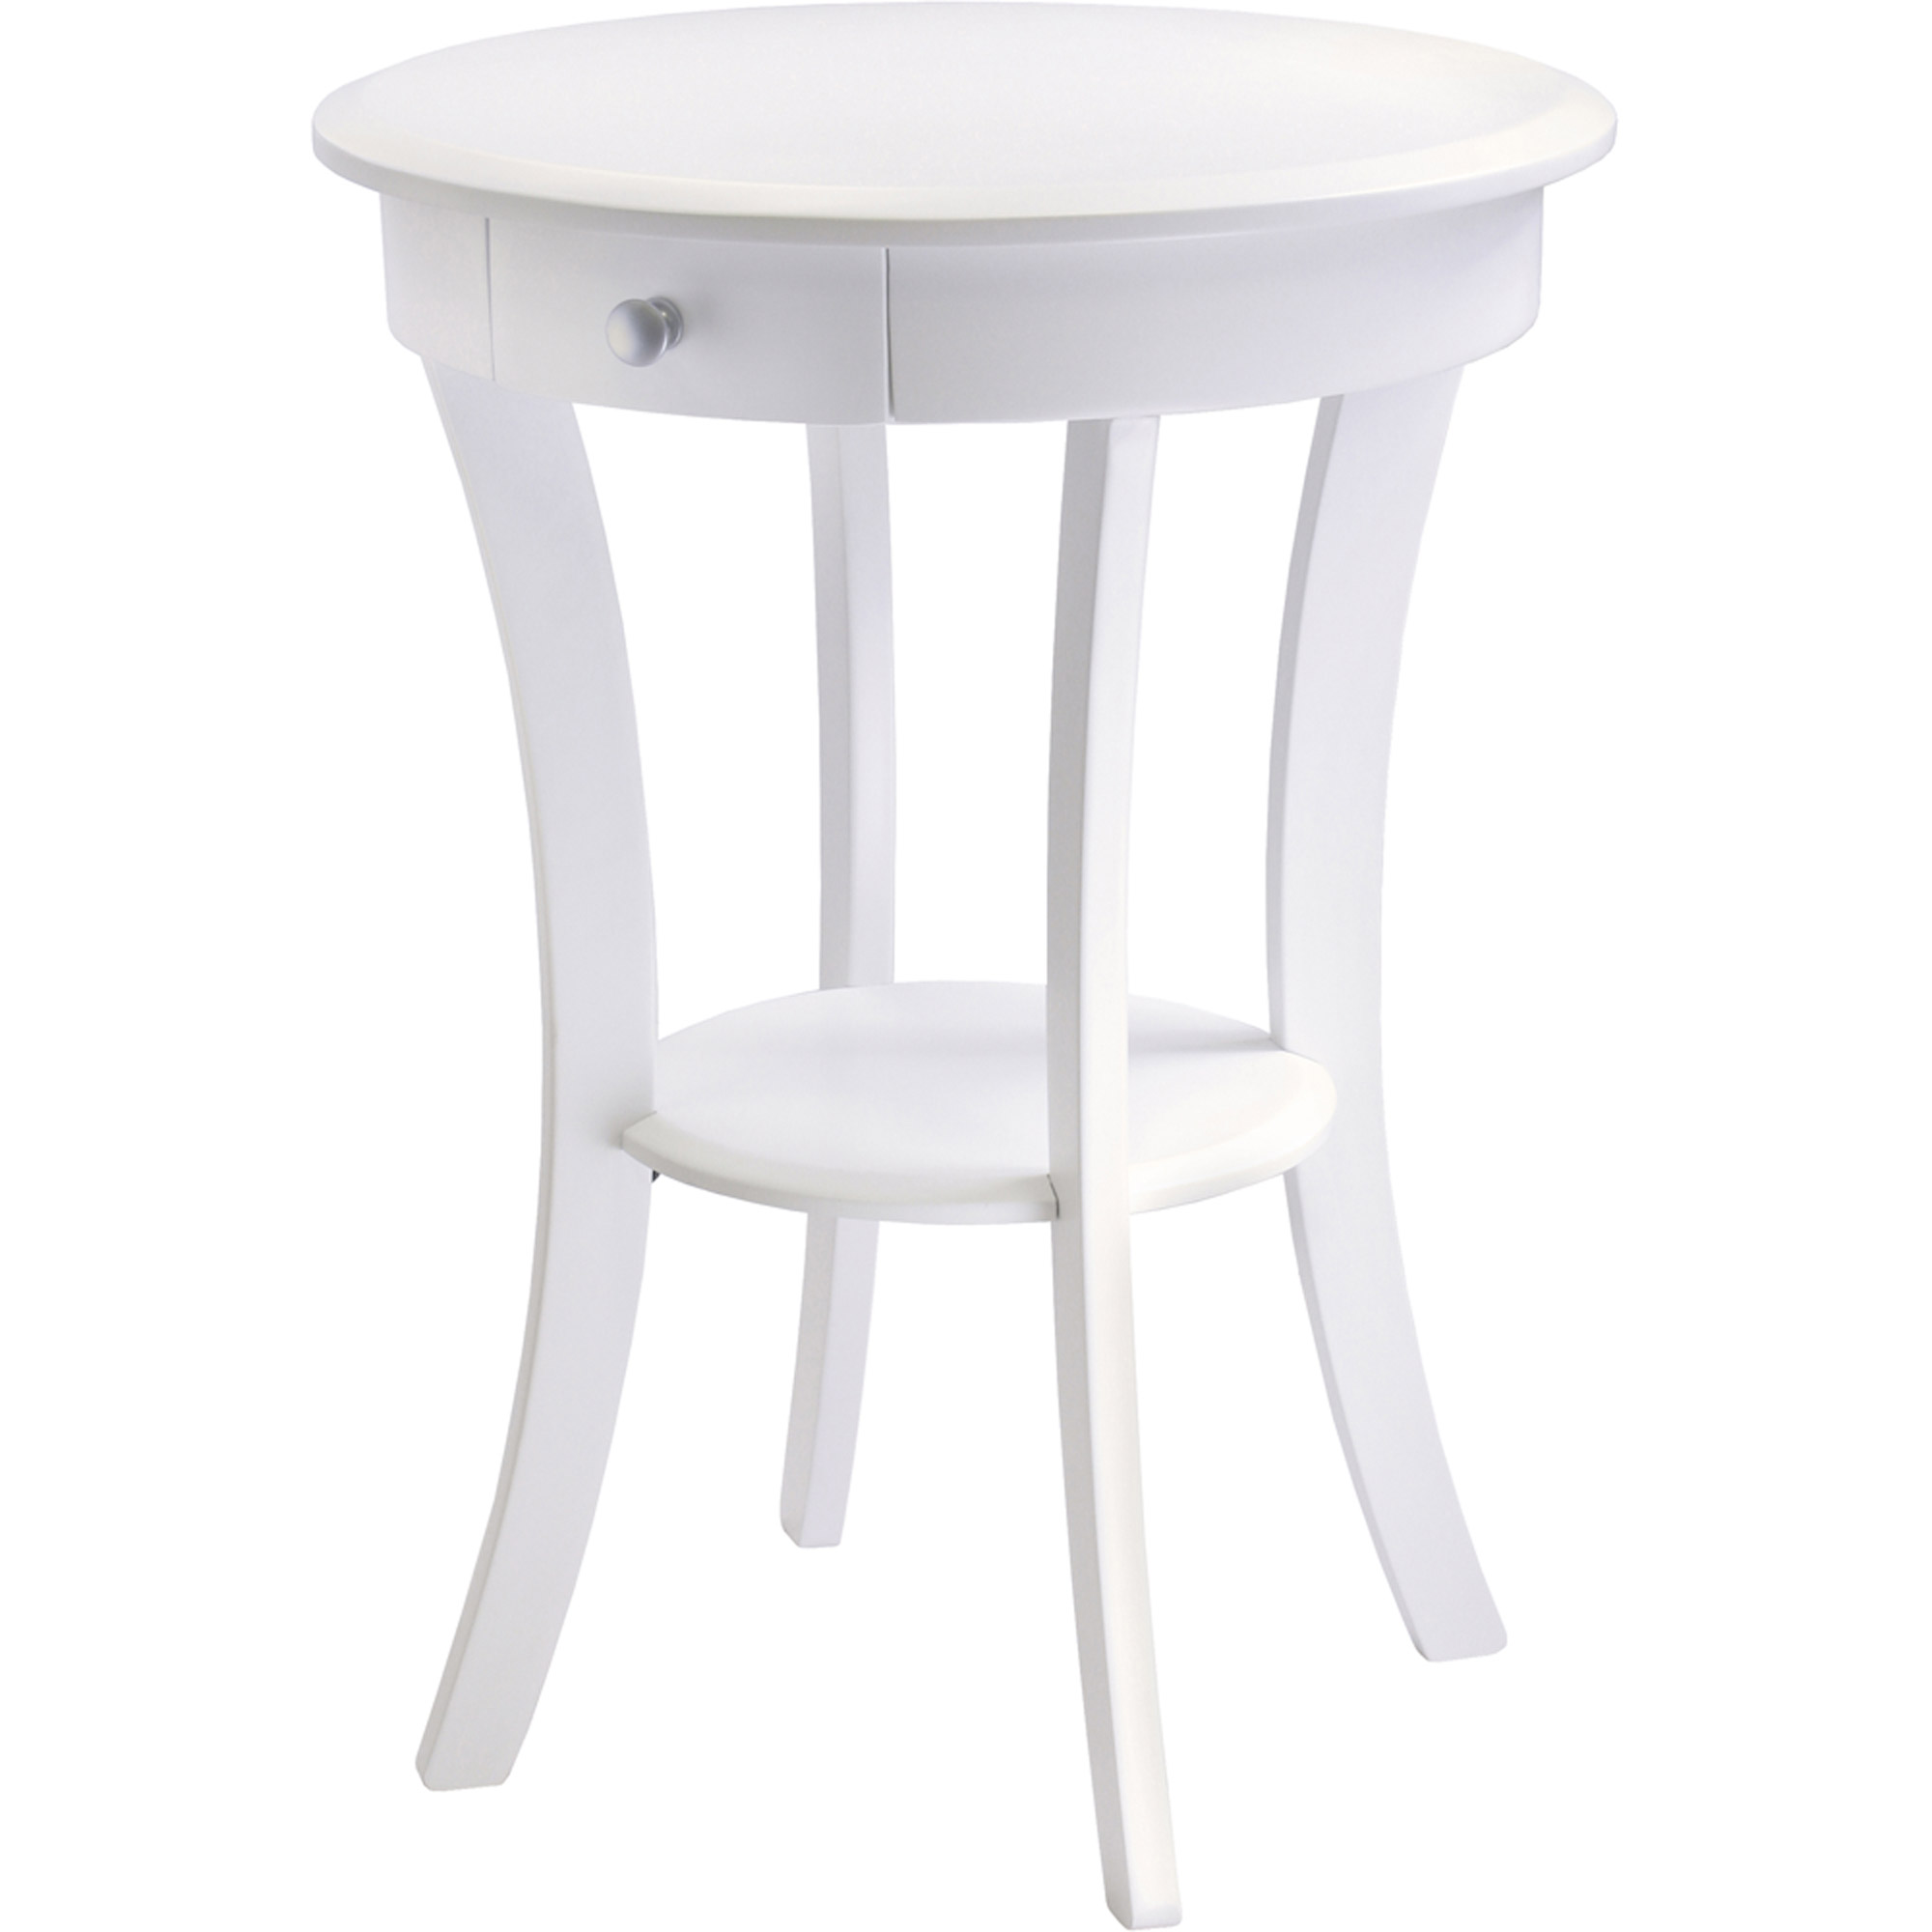 sasha round accent table large white grandfather clock ashley trunk coffee gold and marble end garden furniture light oak lamp steel room essentials hairpin mini nice tables diy